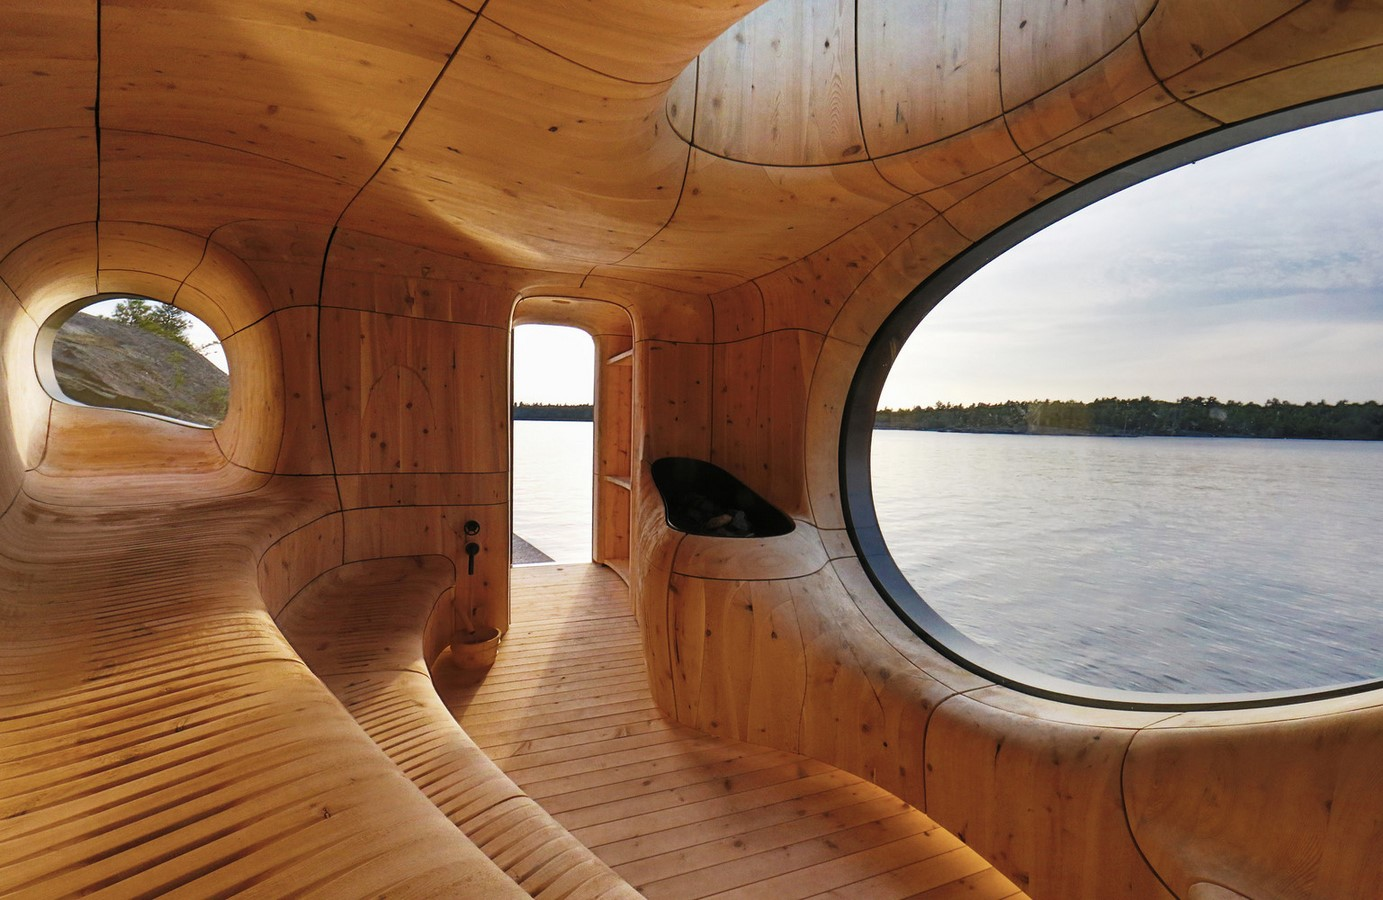 10 Examples of Wood used in Modern Architecture - Sheet27